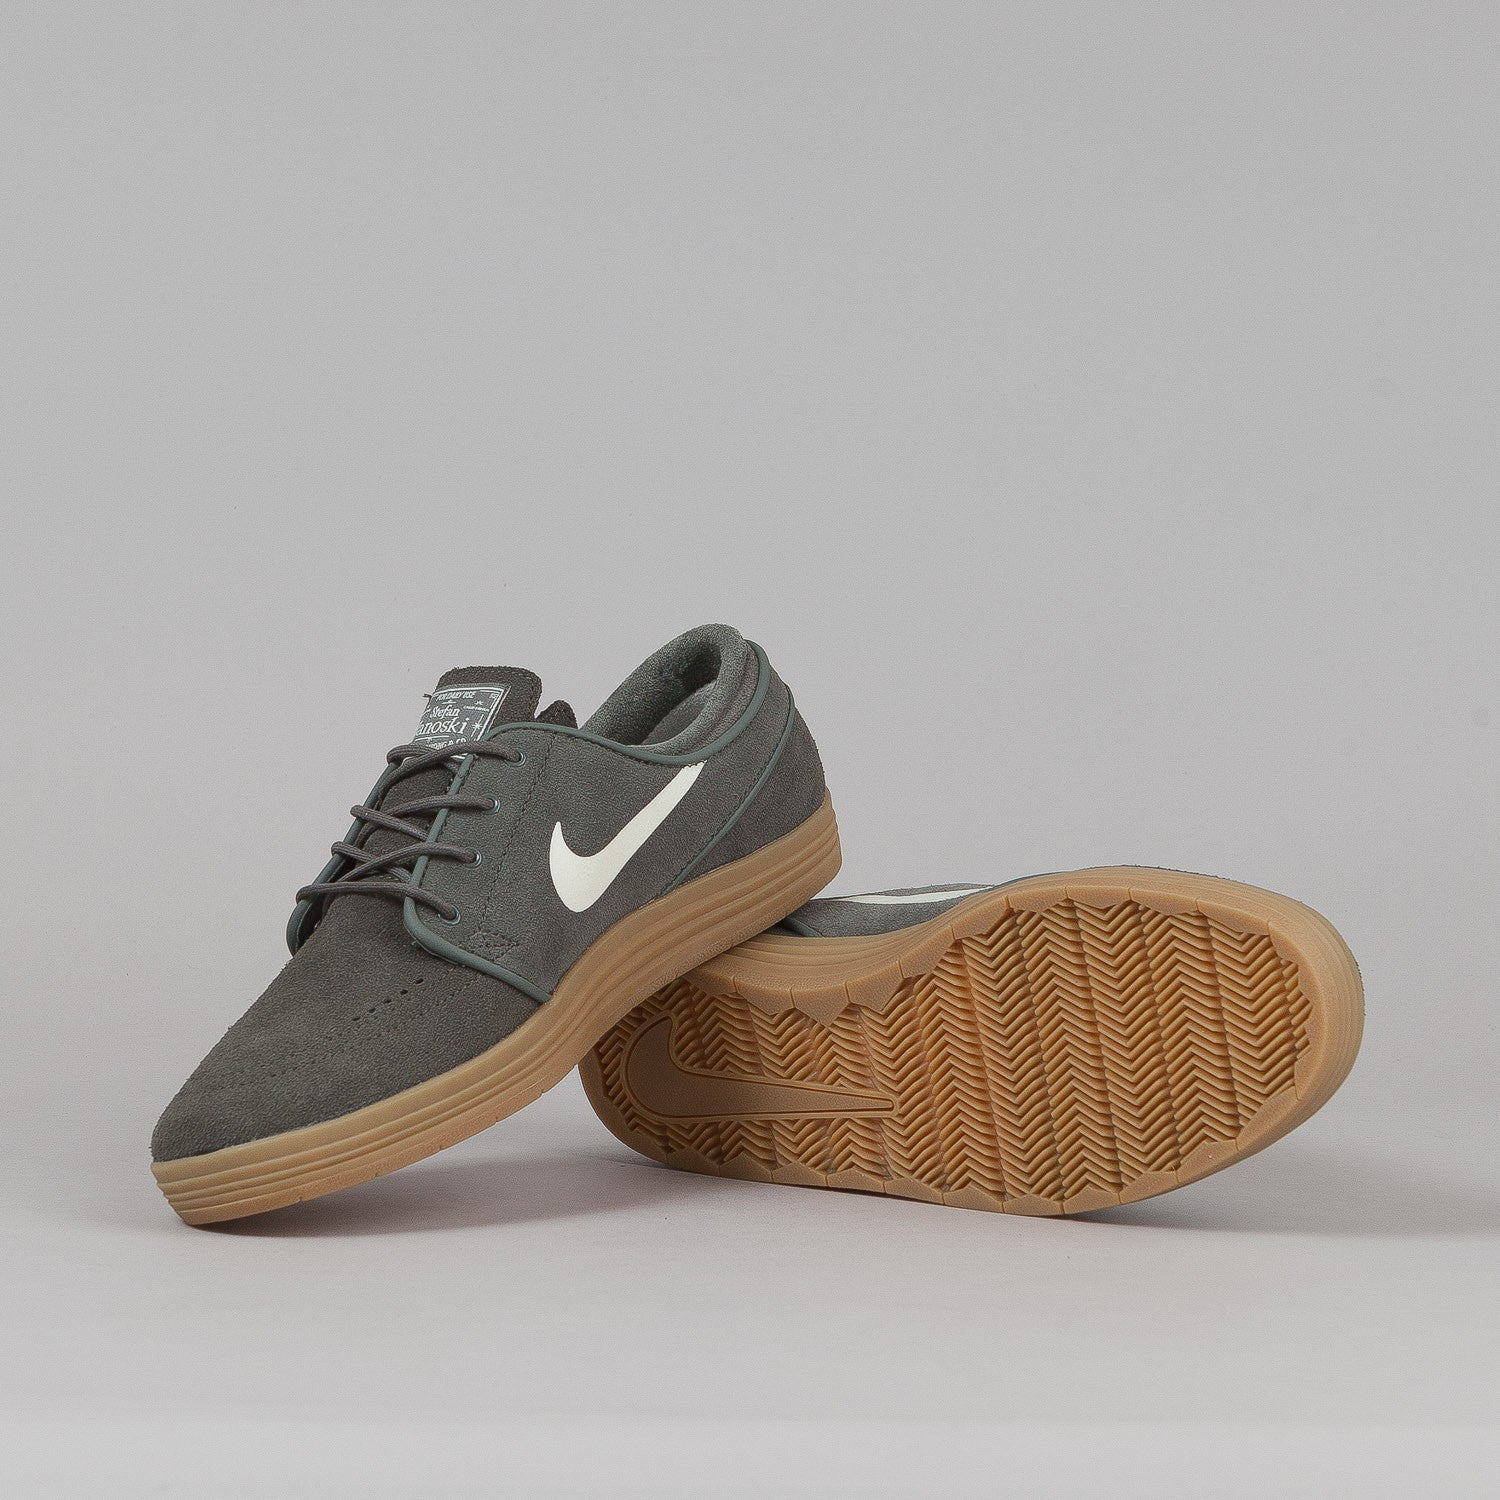 Nike SB Lunar Stefan Janoski Shoes River Rock / Sail - Gum Light Brown